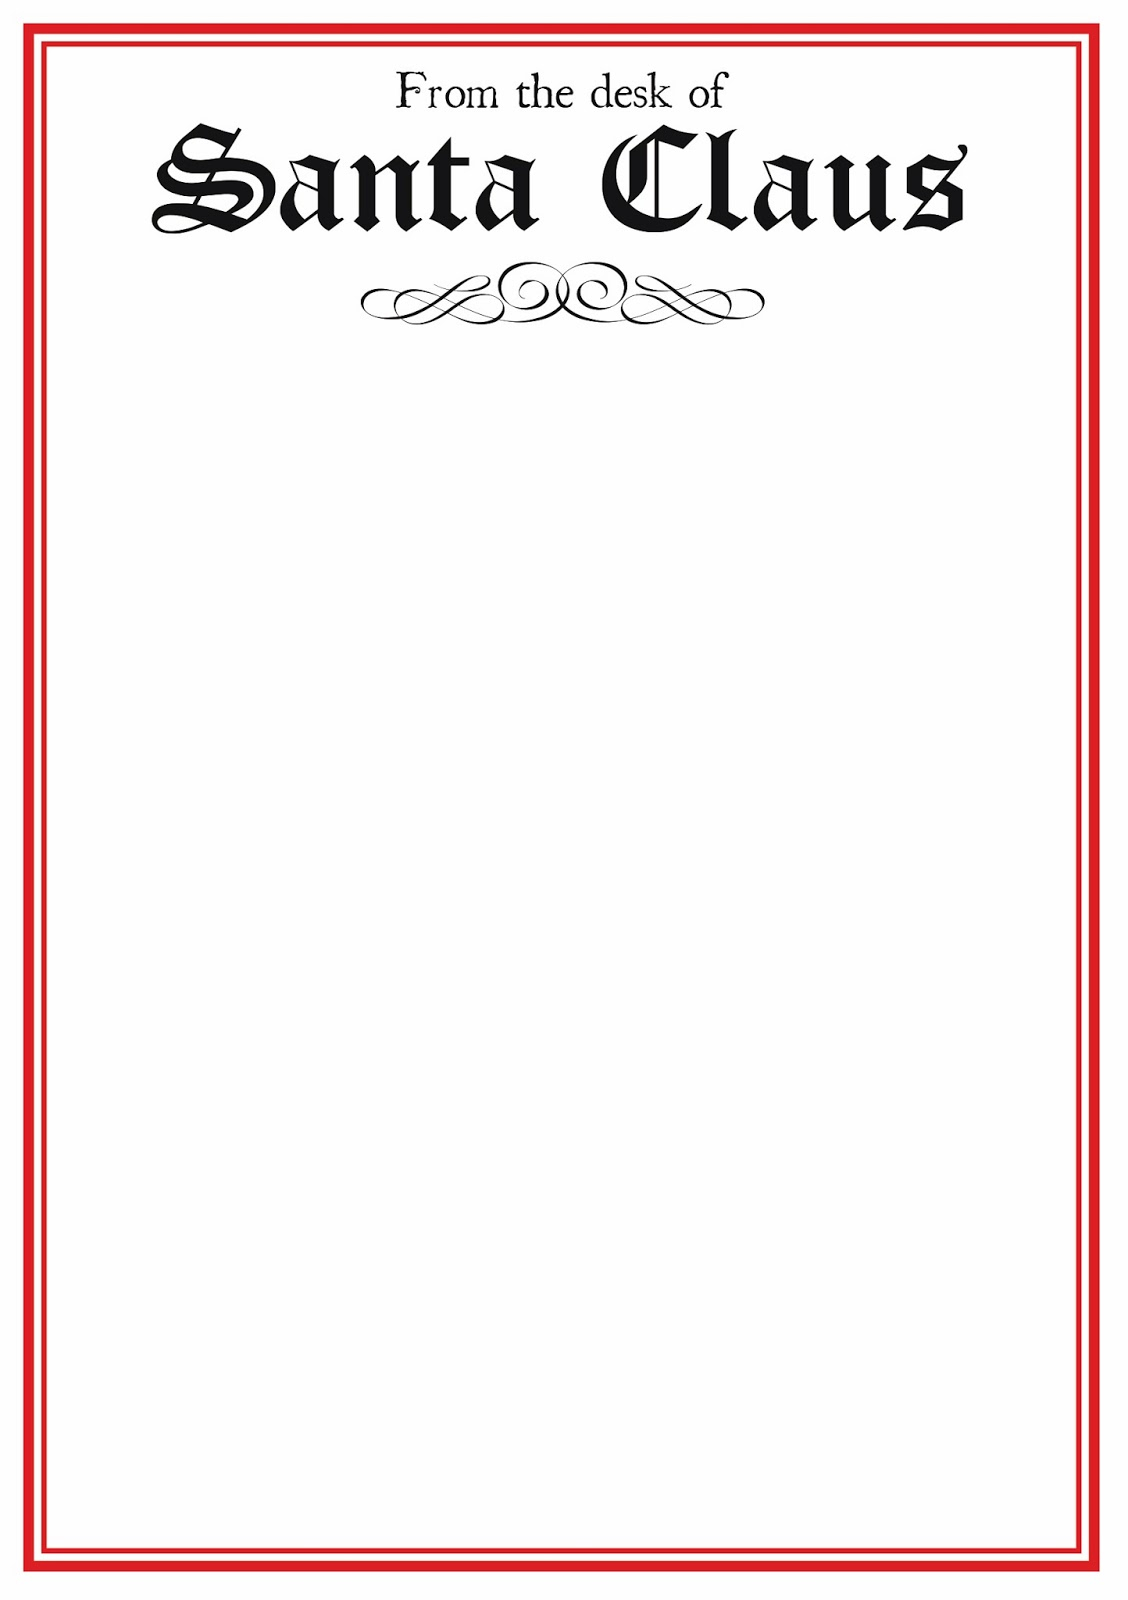 free printable letter from santa word template example-word santa letter template 5-o